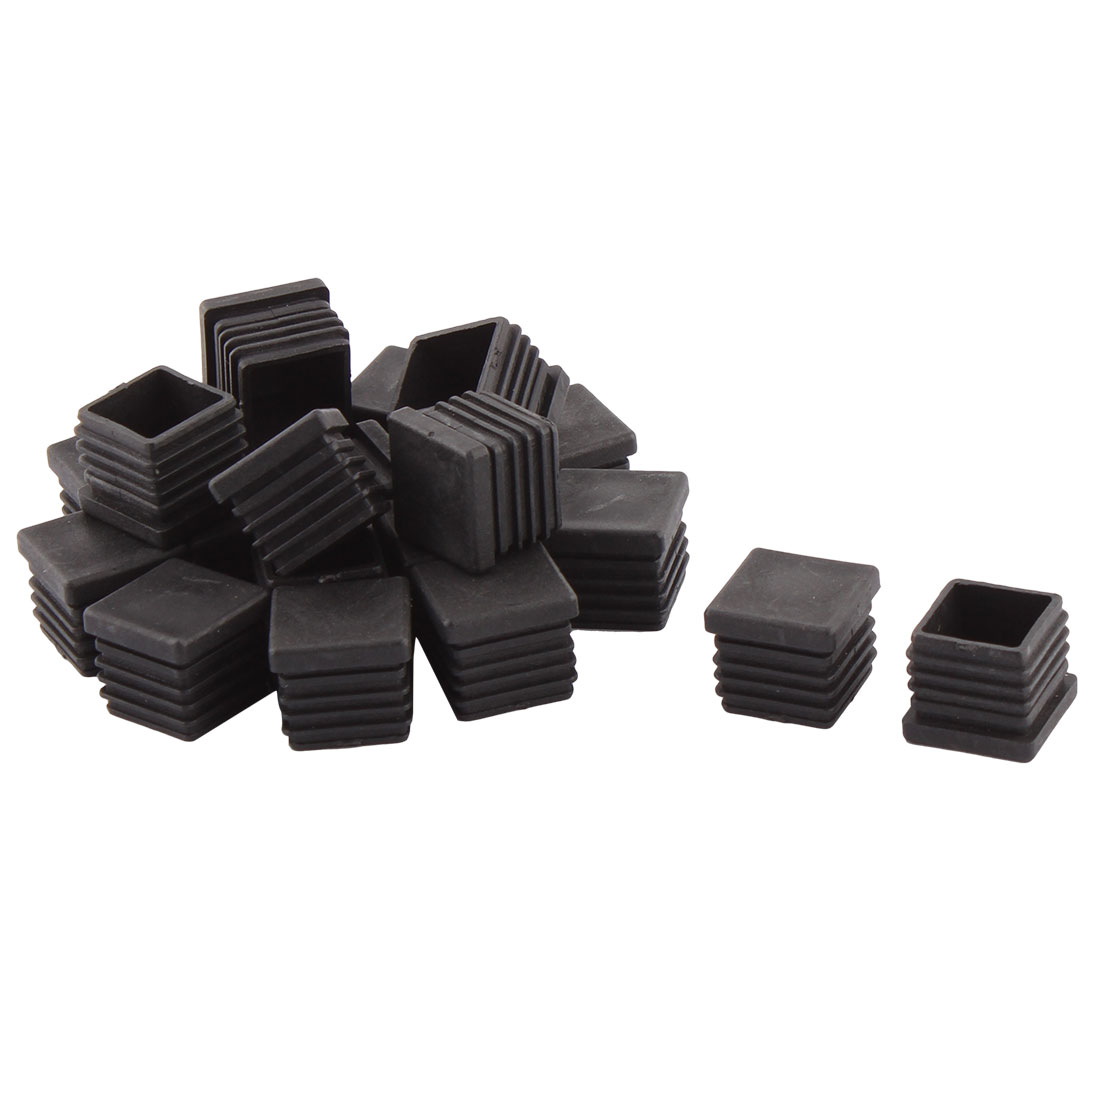 Home Office Plastic Square Shaped Table Chair Leg Tube Pipe Insert Black 22 x 22mm 20 PCS